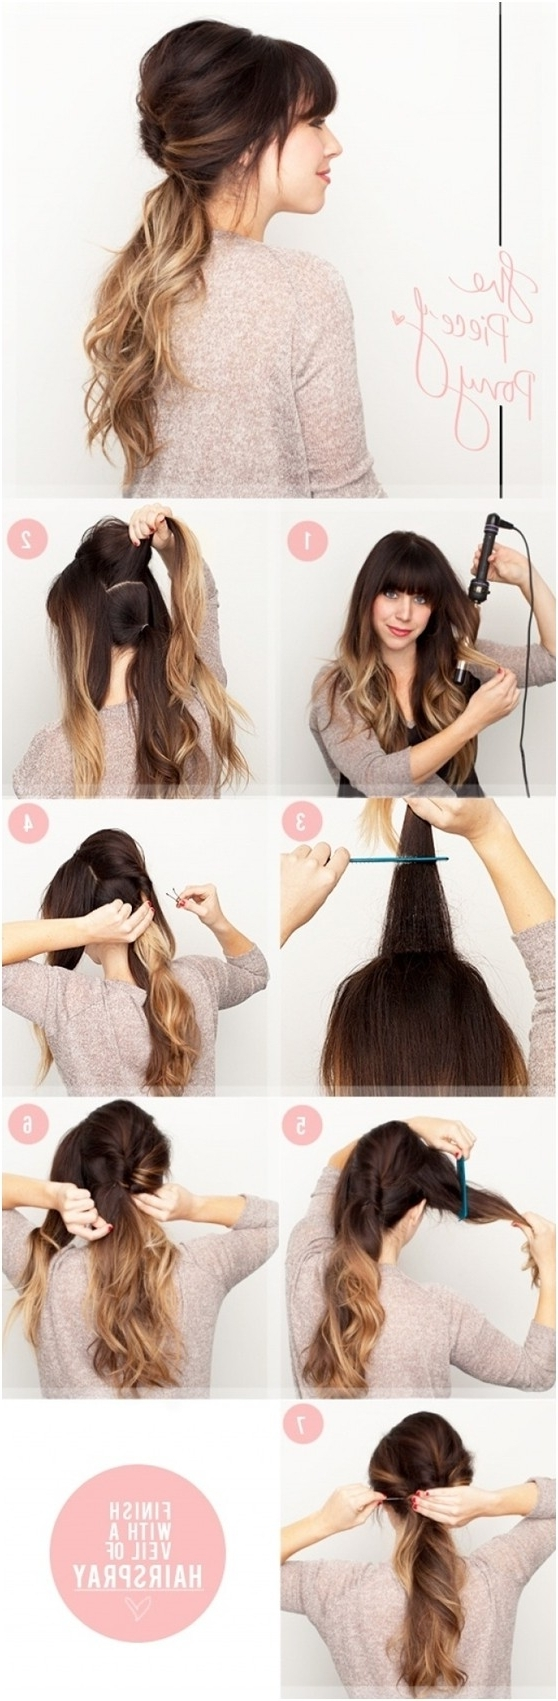 Trendy Ponytail Hairstyles For Layered Hair With 15 Cute & Easy Ponytails – Sure Champ (View 12 of 20)